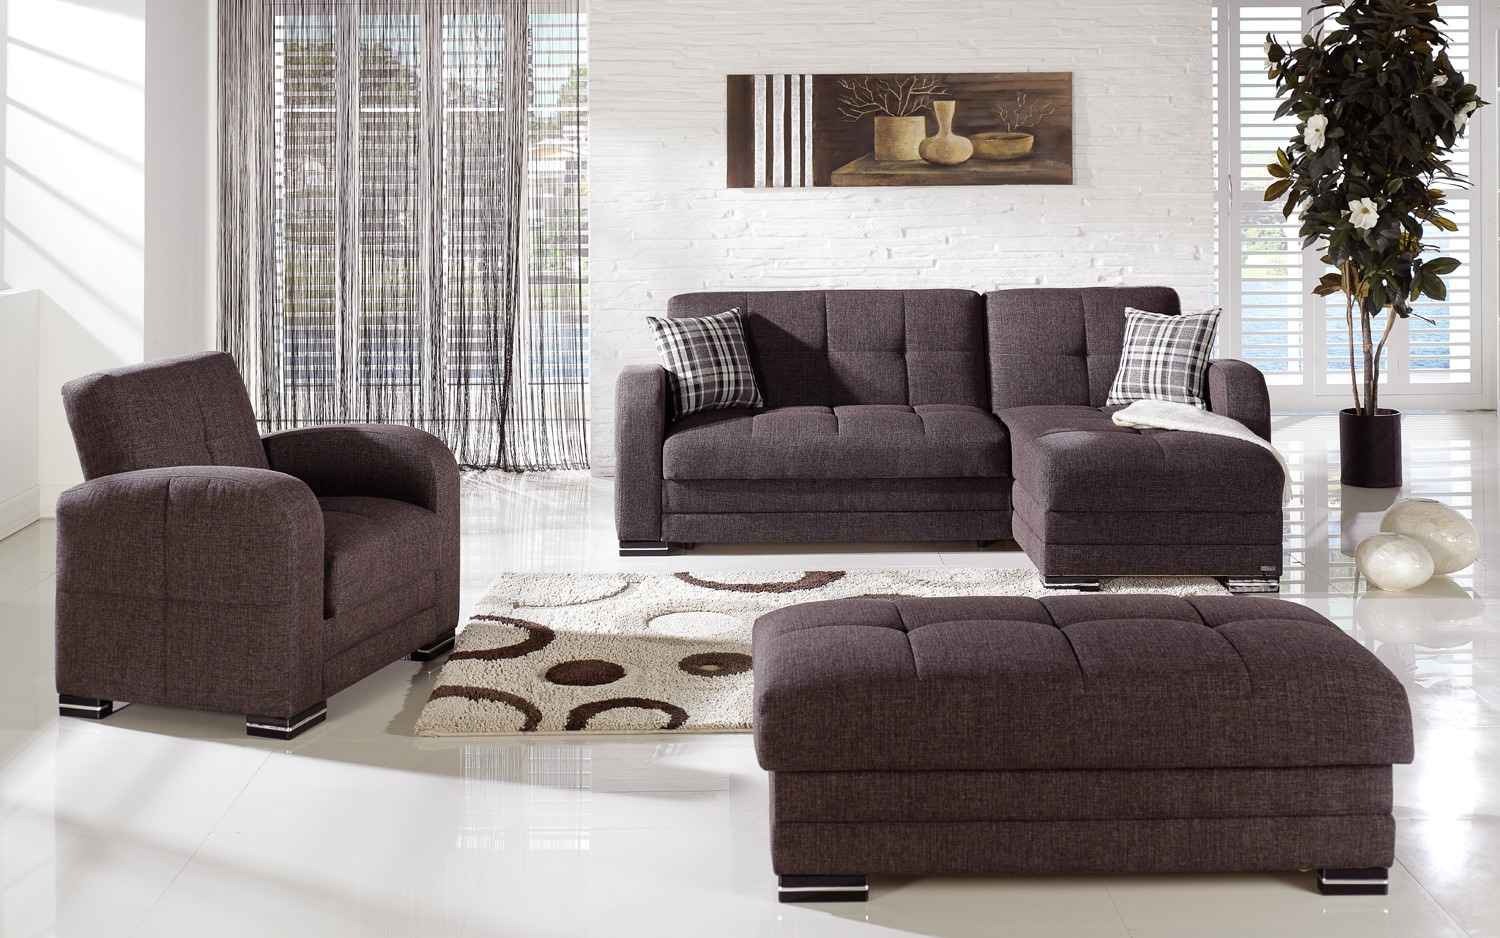 Kubo Andre Dark Brown Sectional Sofaistikbal (Sunset) within Aspen 2 Piece Sleeper Sectionals With Laf Chaise (Image 12 of 30)